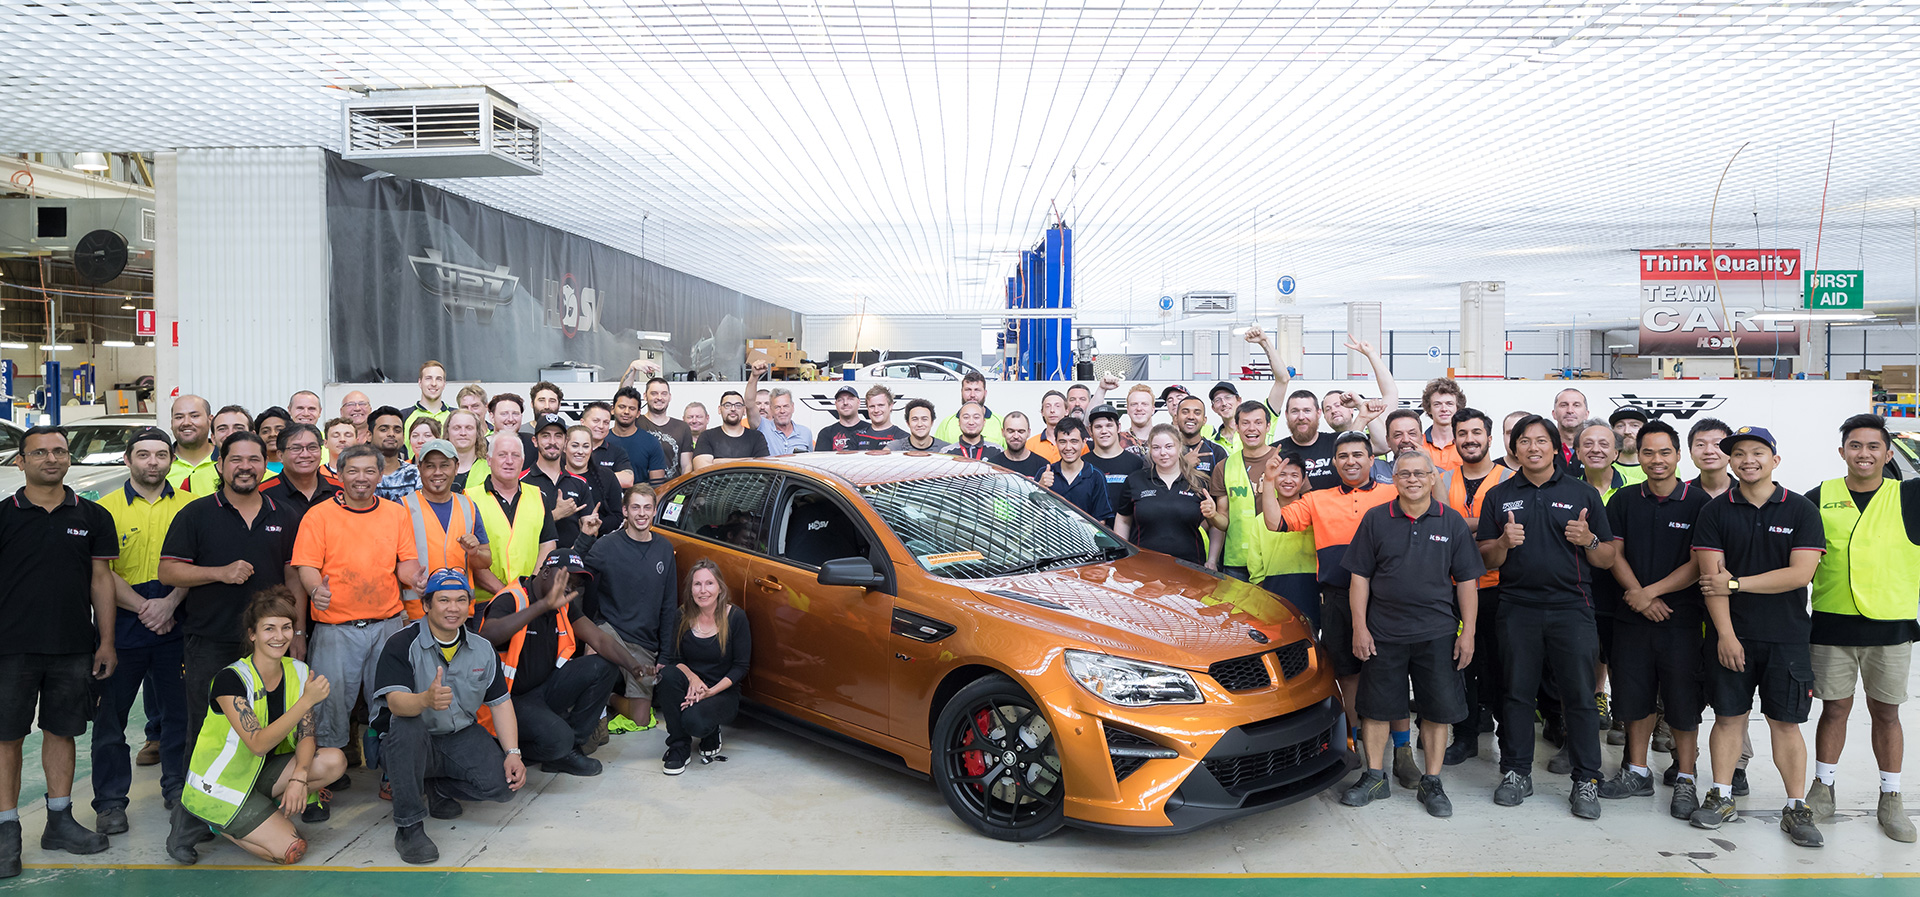 Official company records note that to the end of 2017, HSV has built 90,114 vehicles.